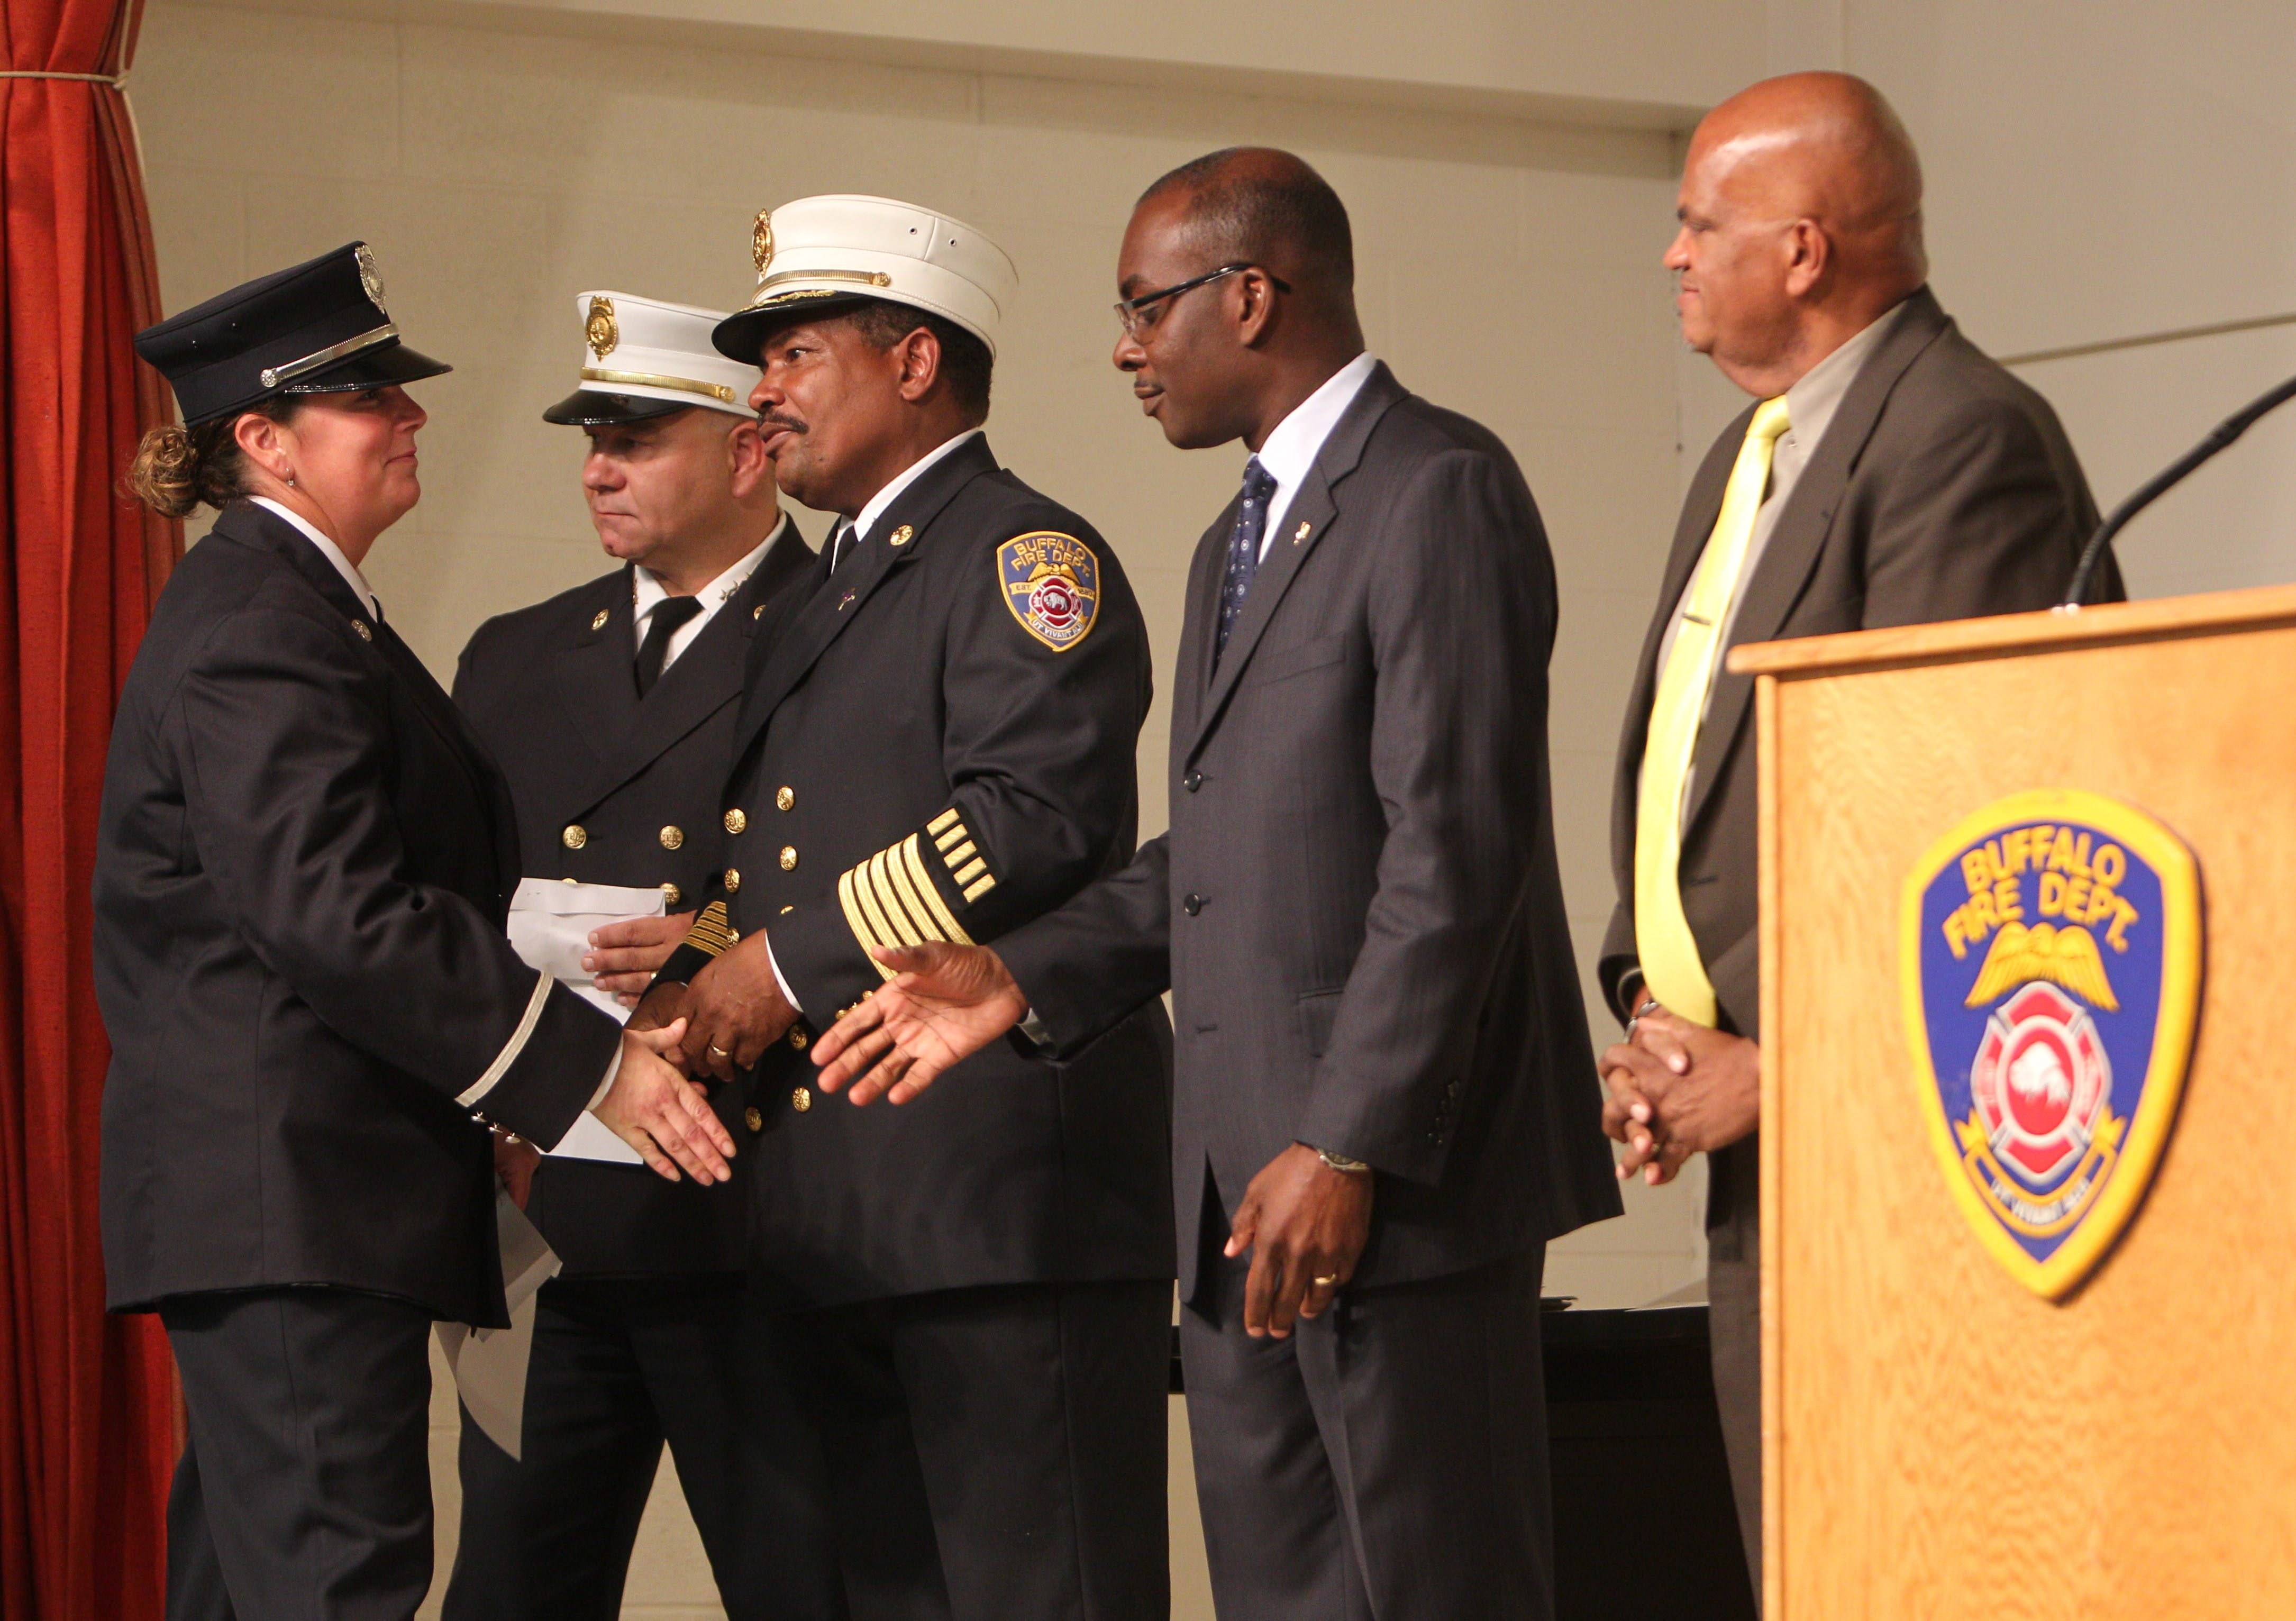 During the Buffalo Fire Department's promotions ceremony on Sept. 16, 2013, 43 firefighters were promoted to positions of division chief, battalion chief, captain and lieutenant. From left, Wendy Majtyka-Hartman is promoted to captain, and is being congratulated by then-Assistant Fire Commissioner Joseph Tomizzi; Fire Commissioner Garnell Whitfield Jr.; Mayor Byron W. Brown and Chaplain Angel Gauthier.